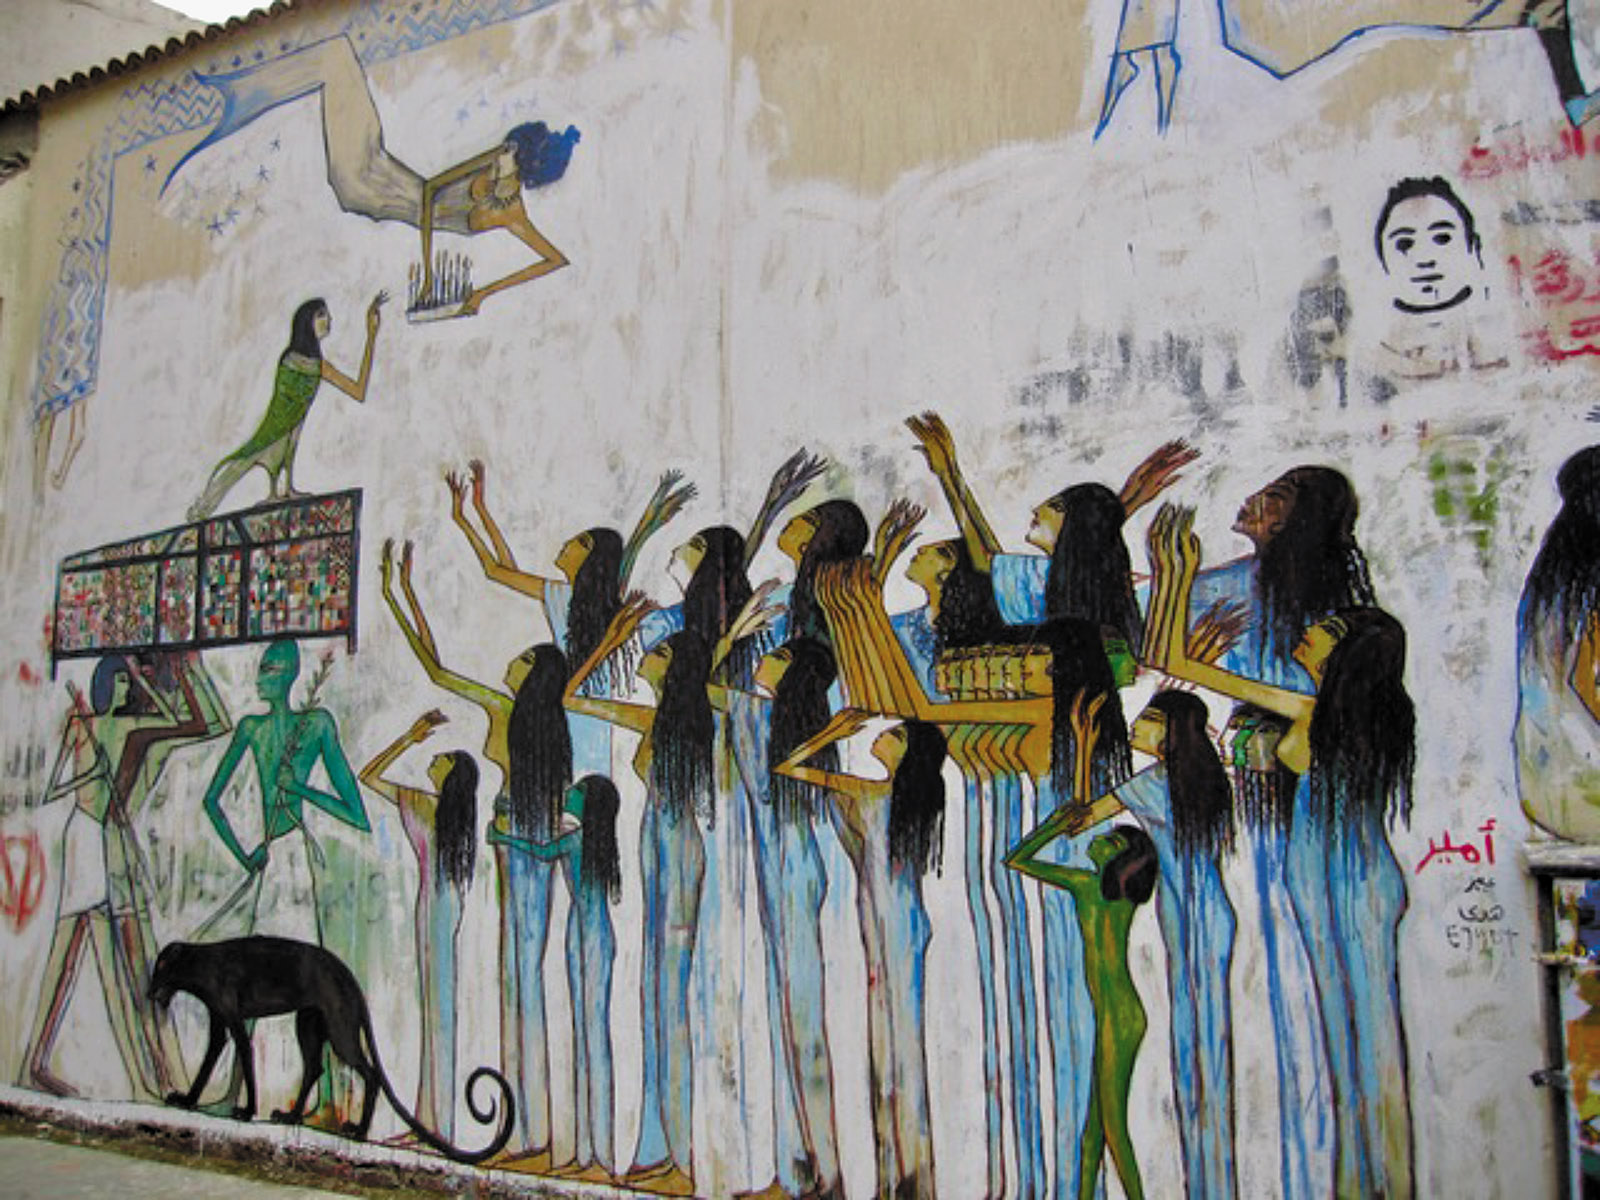 A mural in Tahrir Square commemorating Egyptians murdered by the police